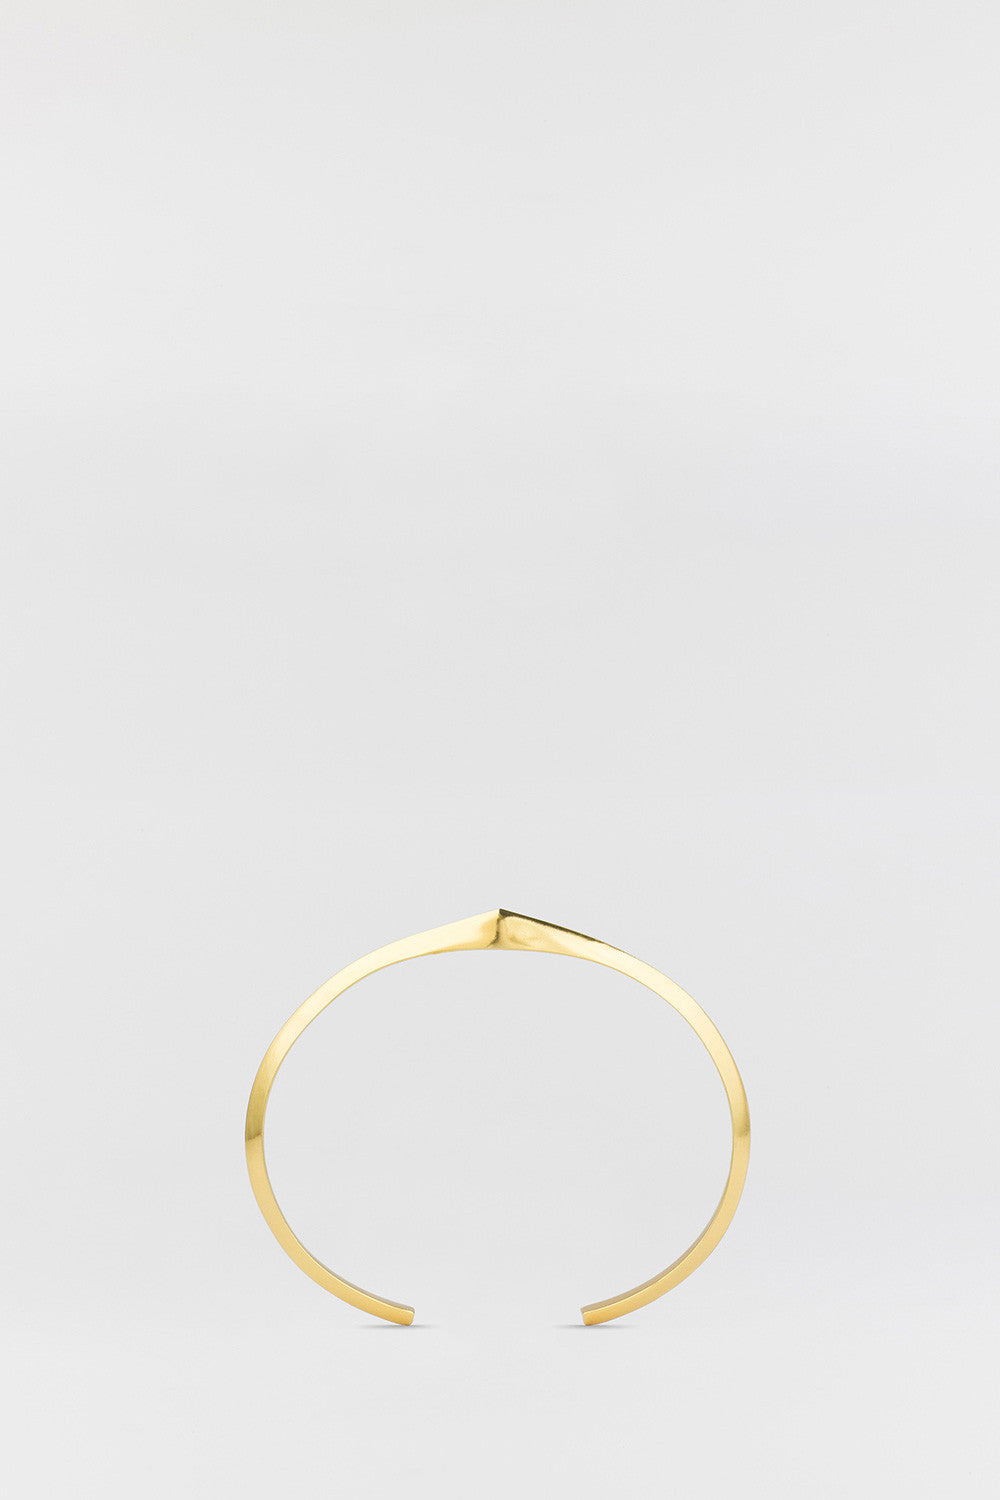 Spiked Bevel Cuff Gold